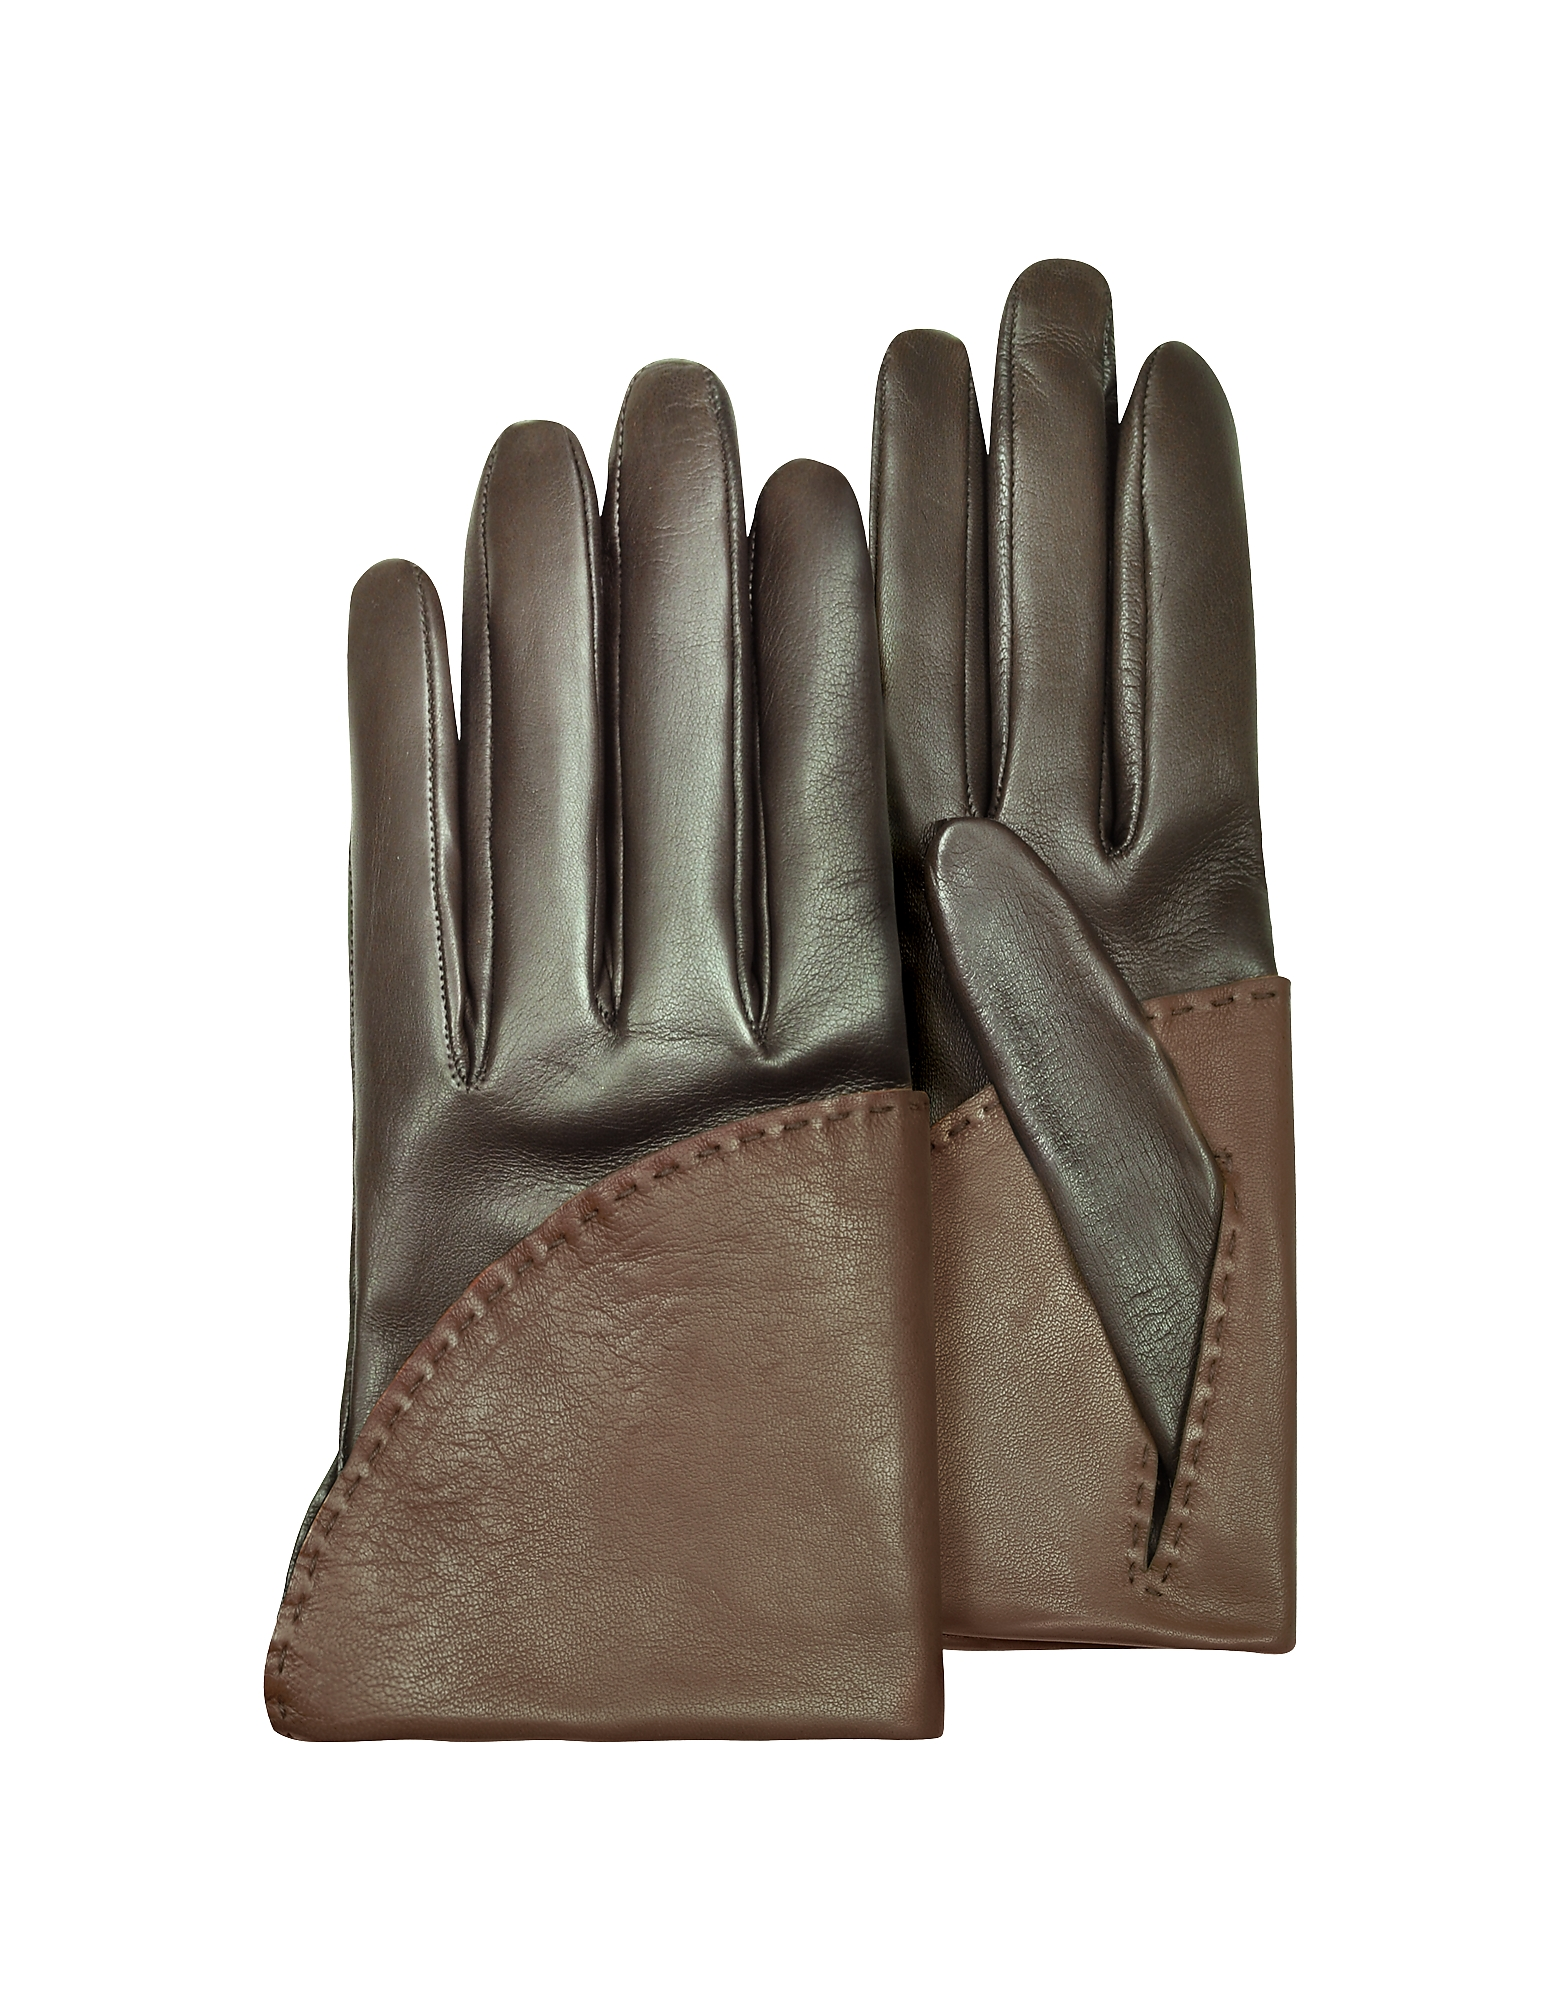 Pineider Designer Women's Gloves, Women's Two-Tone Brown Short Nappa Gloves w/ Silk Lining